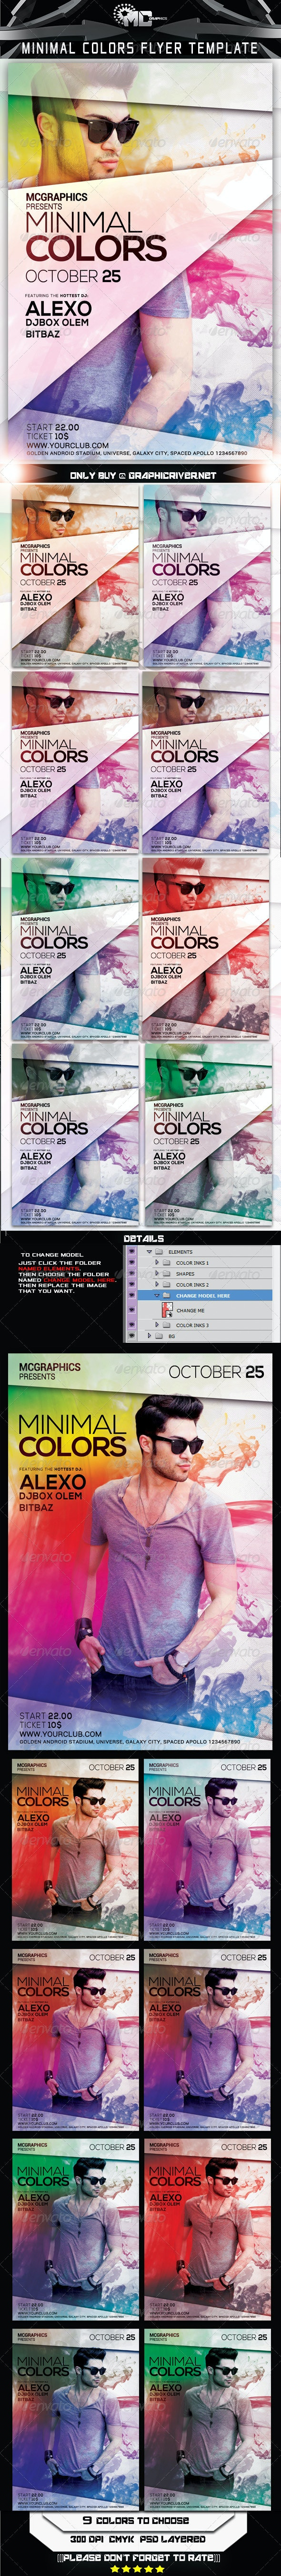 Minimal Colors Flyer Template - Flyers Print Templates